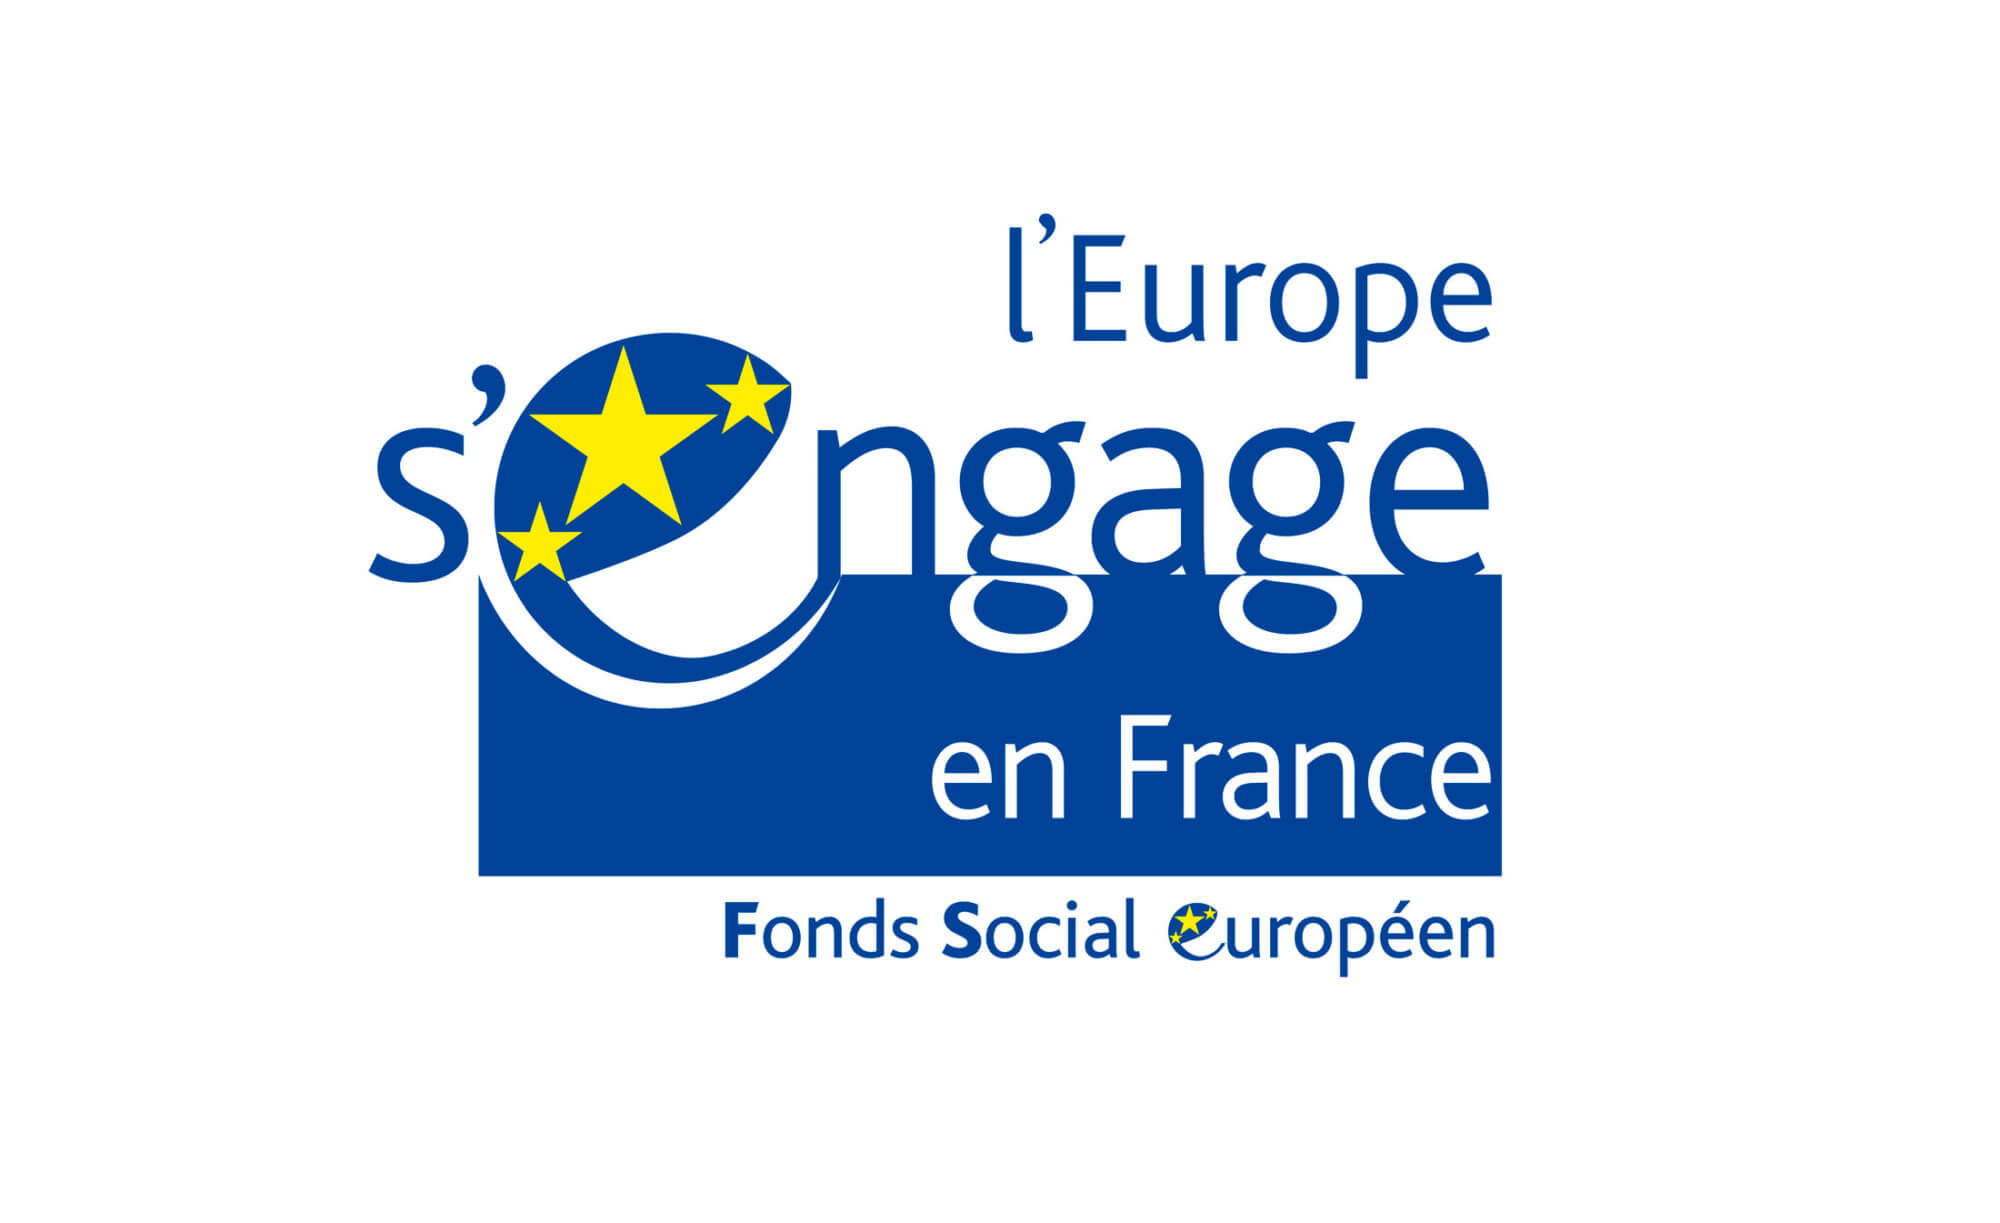 Fonds social europeen l'europe s'engage